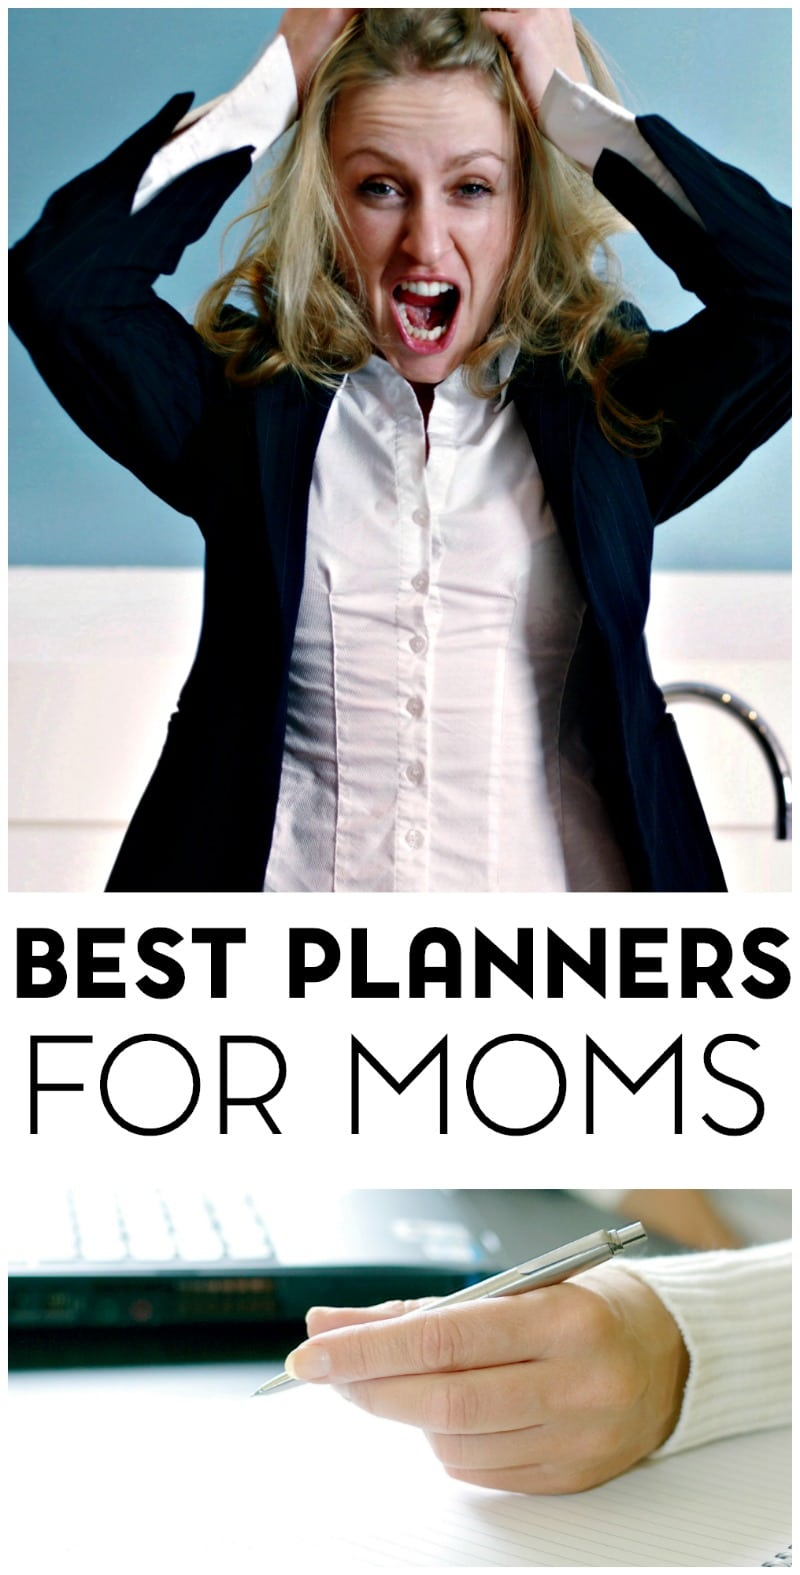 Top Picks for Planners for Moms Who Want to Get Organized 1